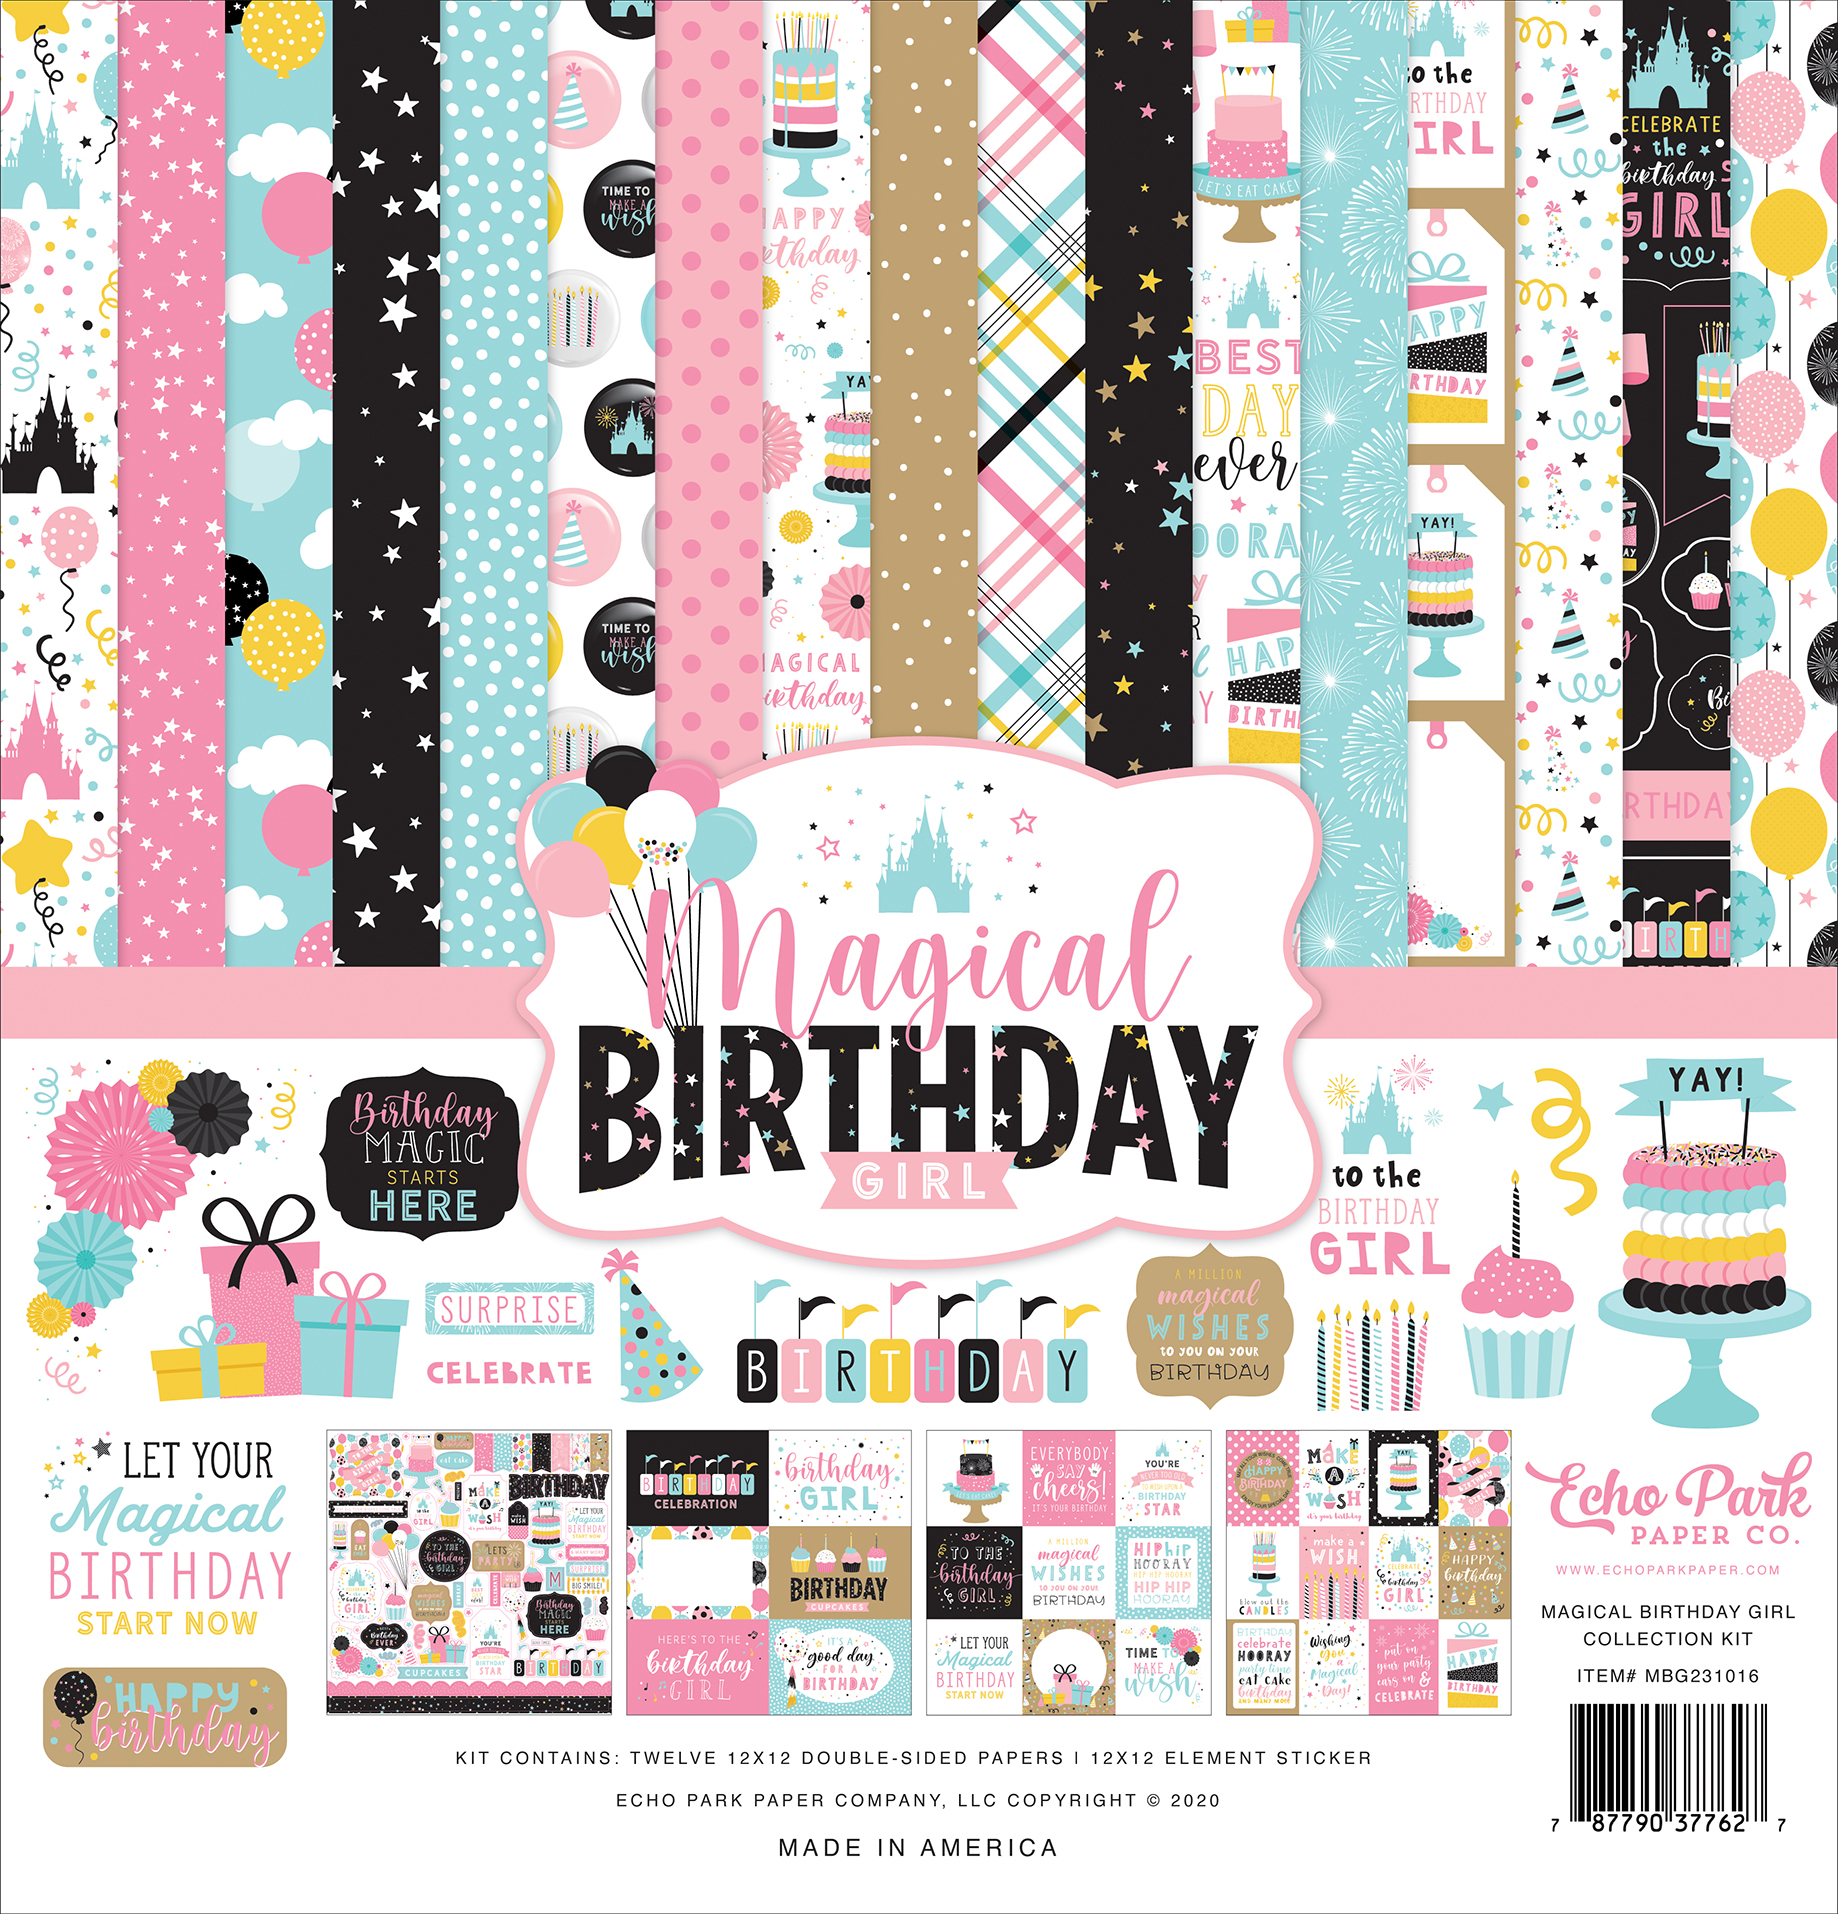 Magical Birthday Girl Collection Kit